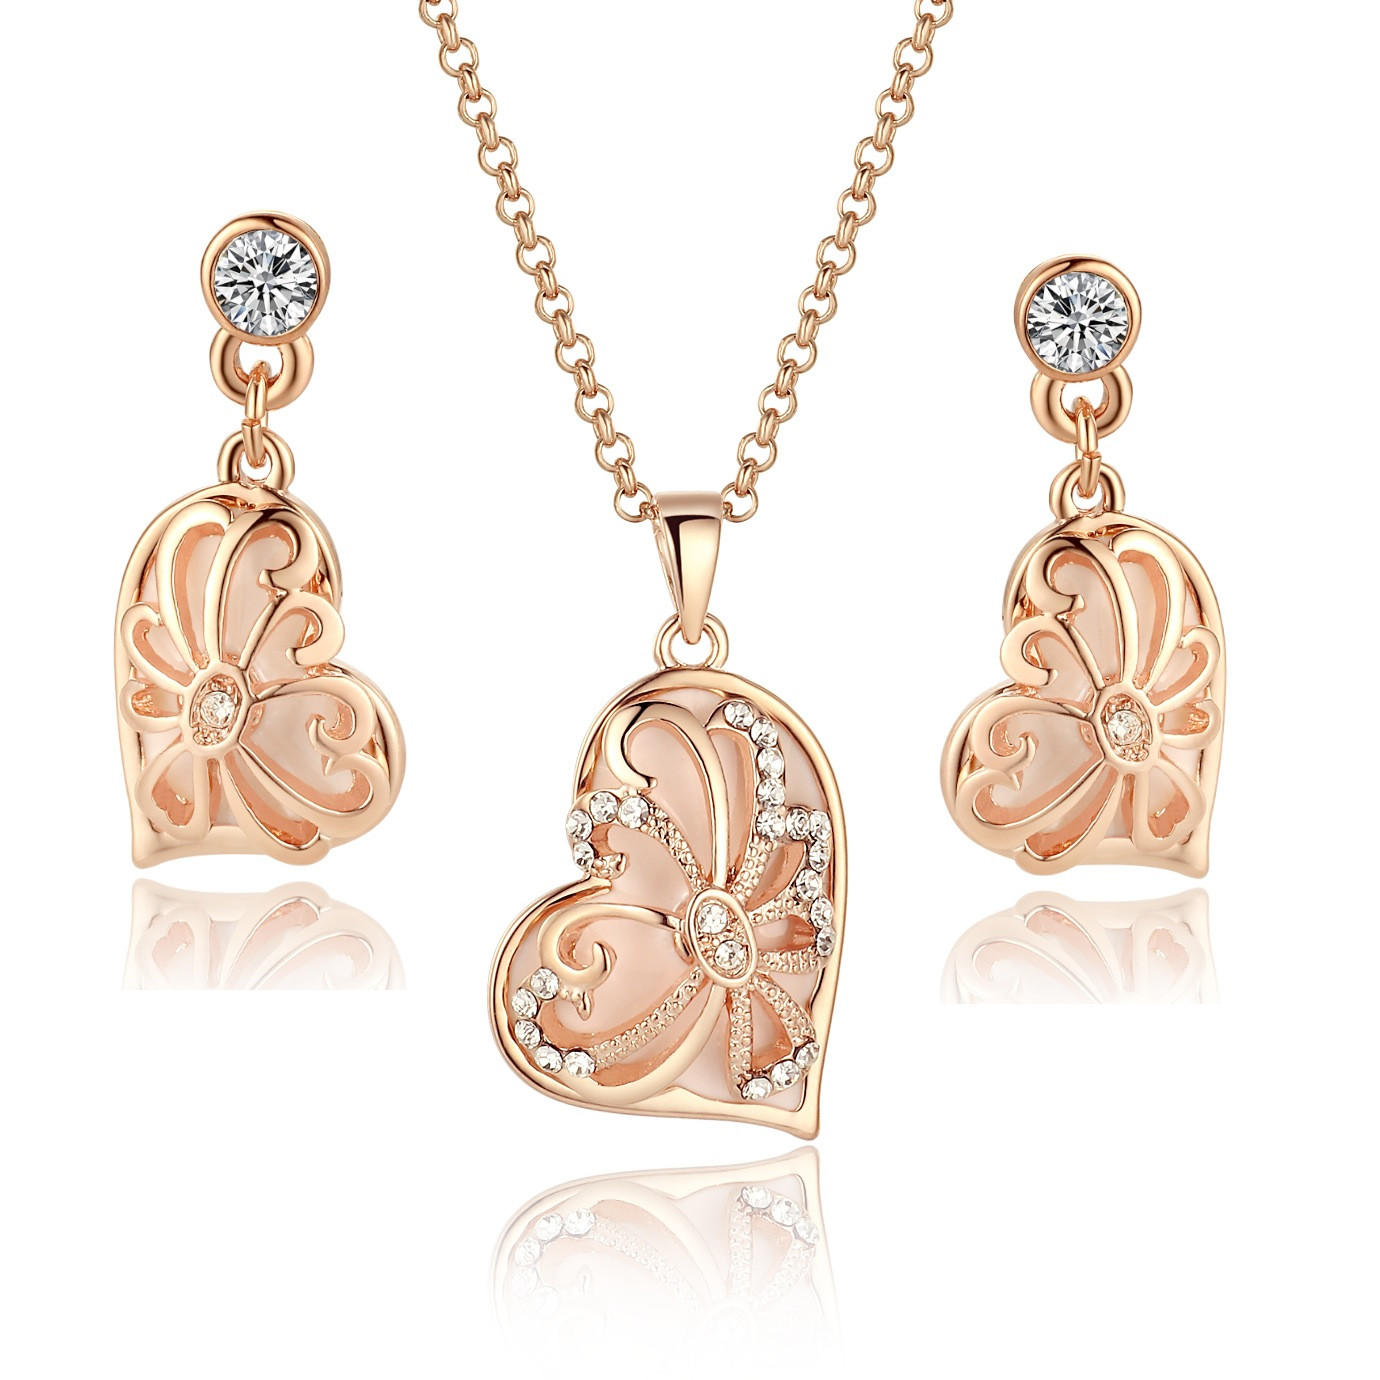 Asymmetrical Pendant Necklace and Earrings Set